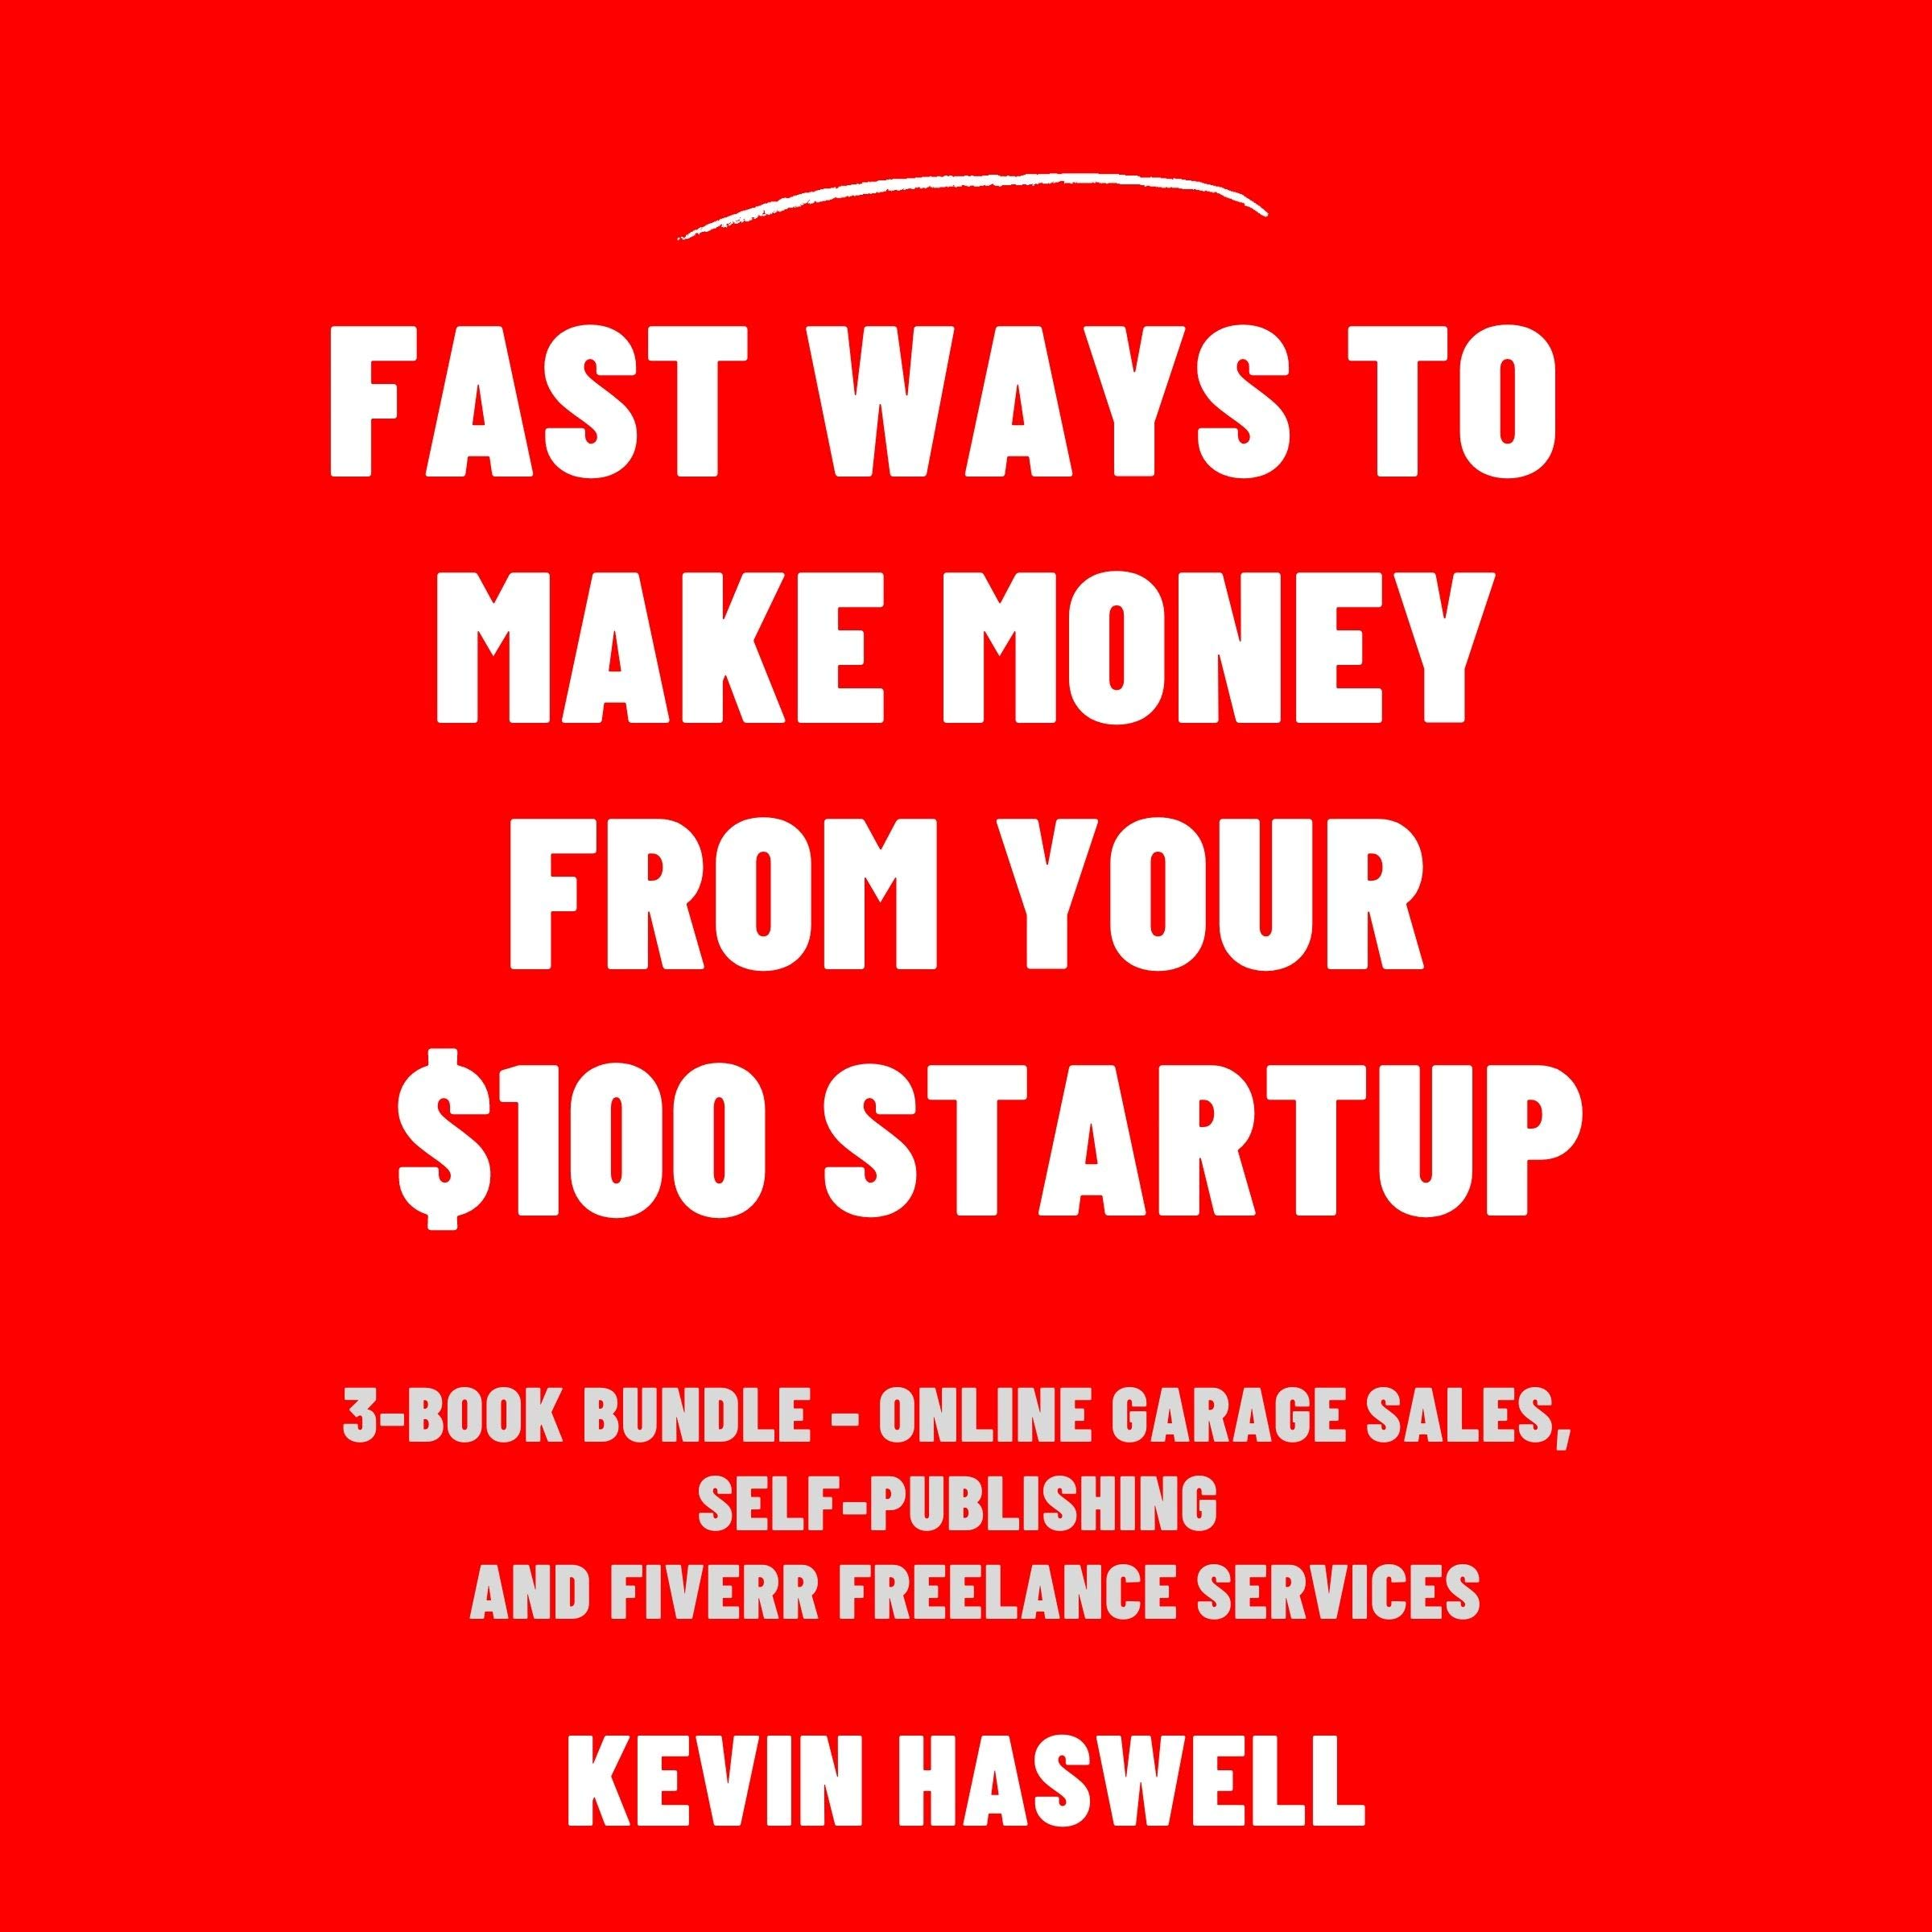 Fast Ways to Make Money from Your $100 Startup: 3-Book Bundle – Online Garage Sales, Self-Publishing and Fiverr Freelance Services